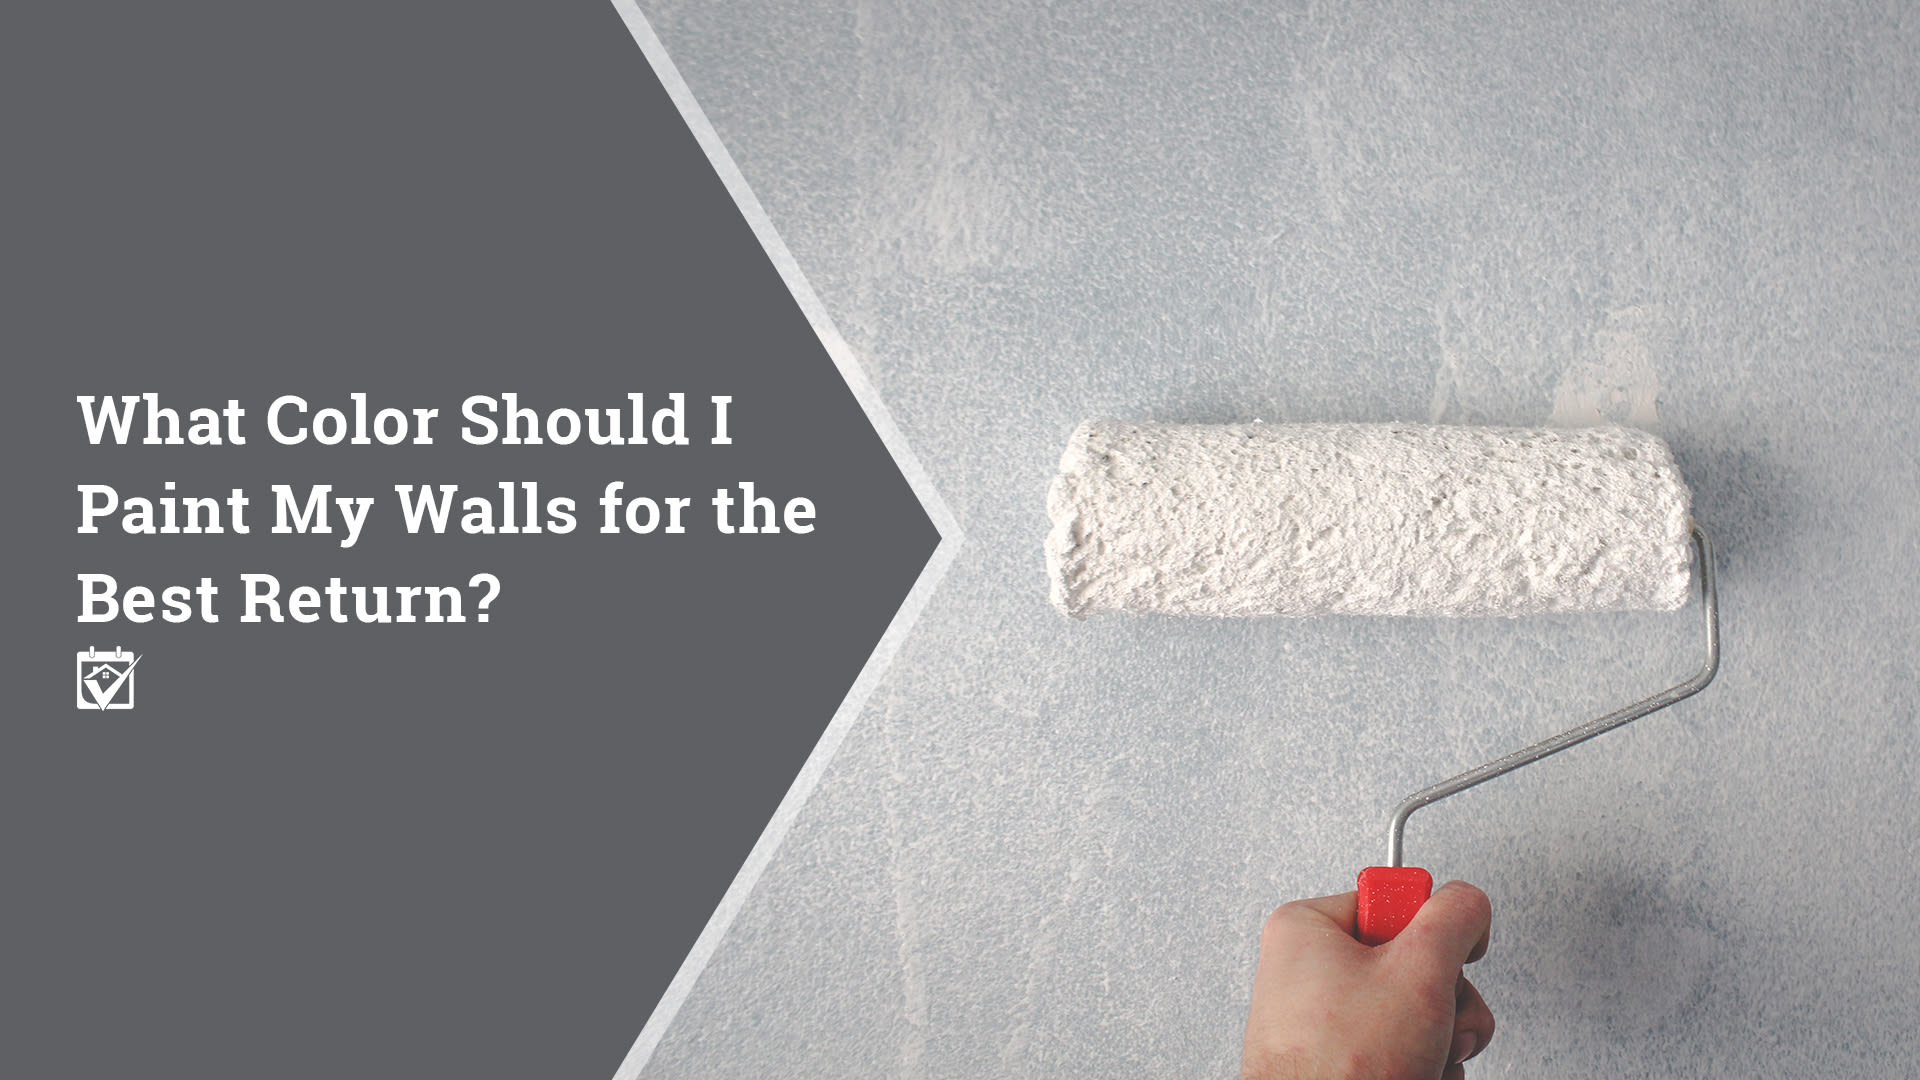 What Color Should I Paint My Walls for the Best Return?